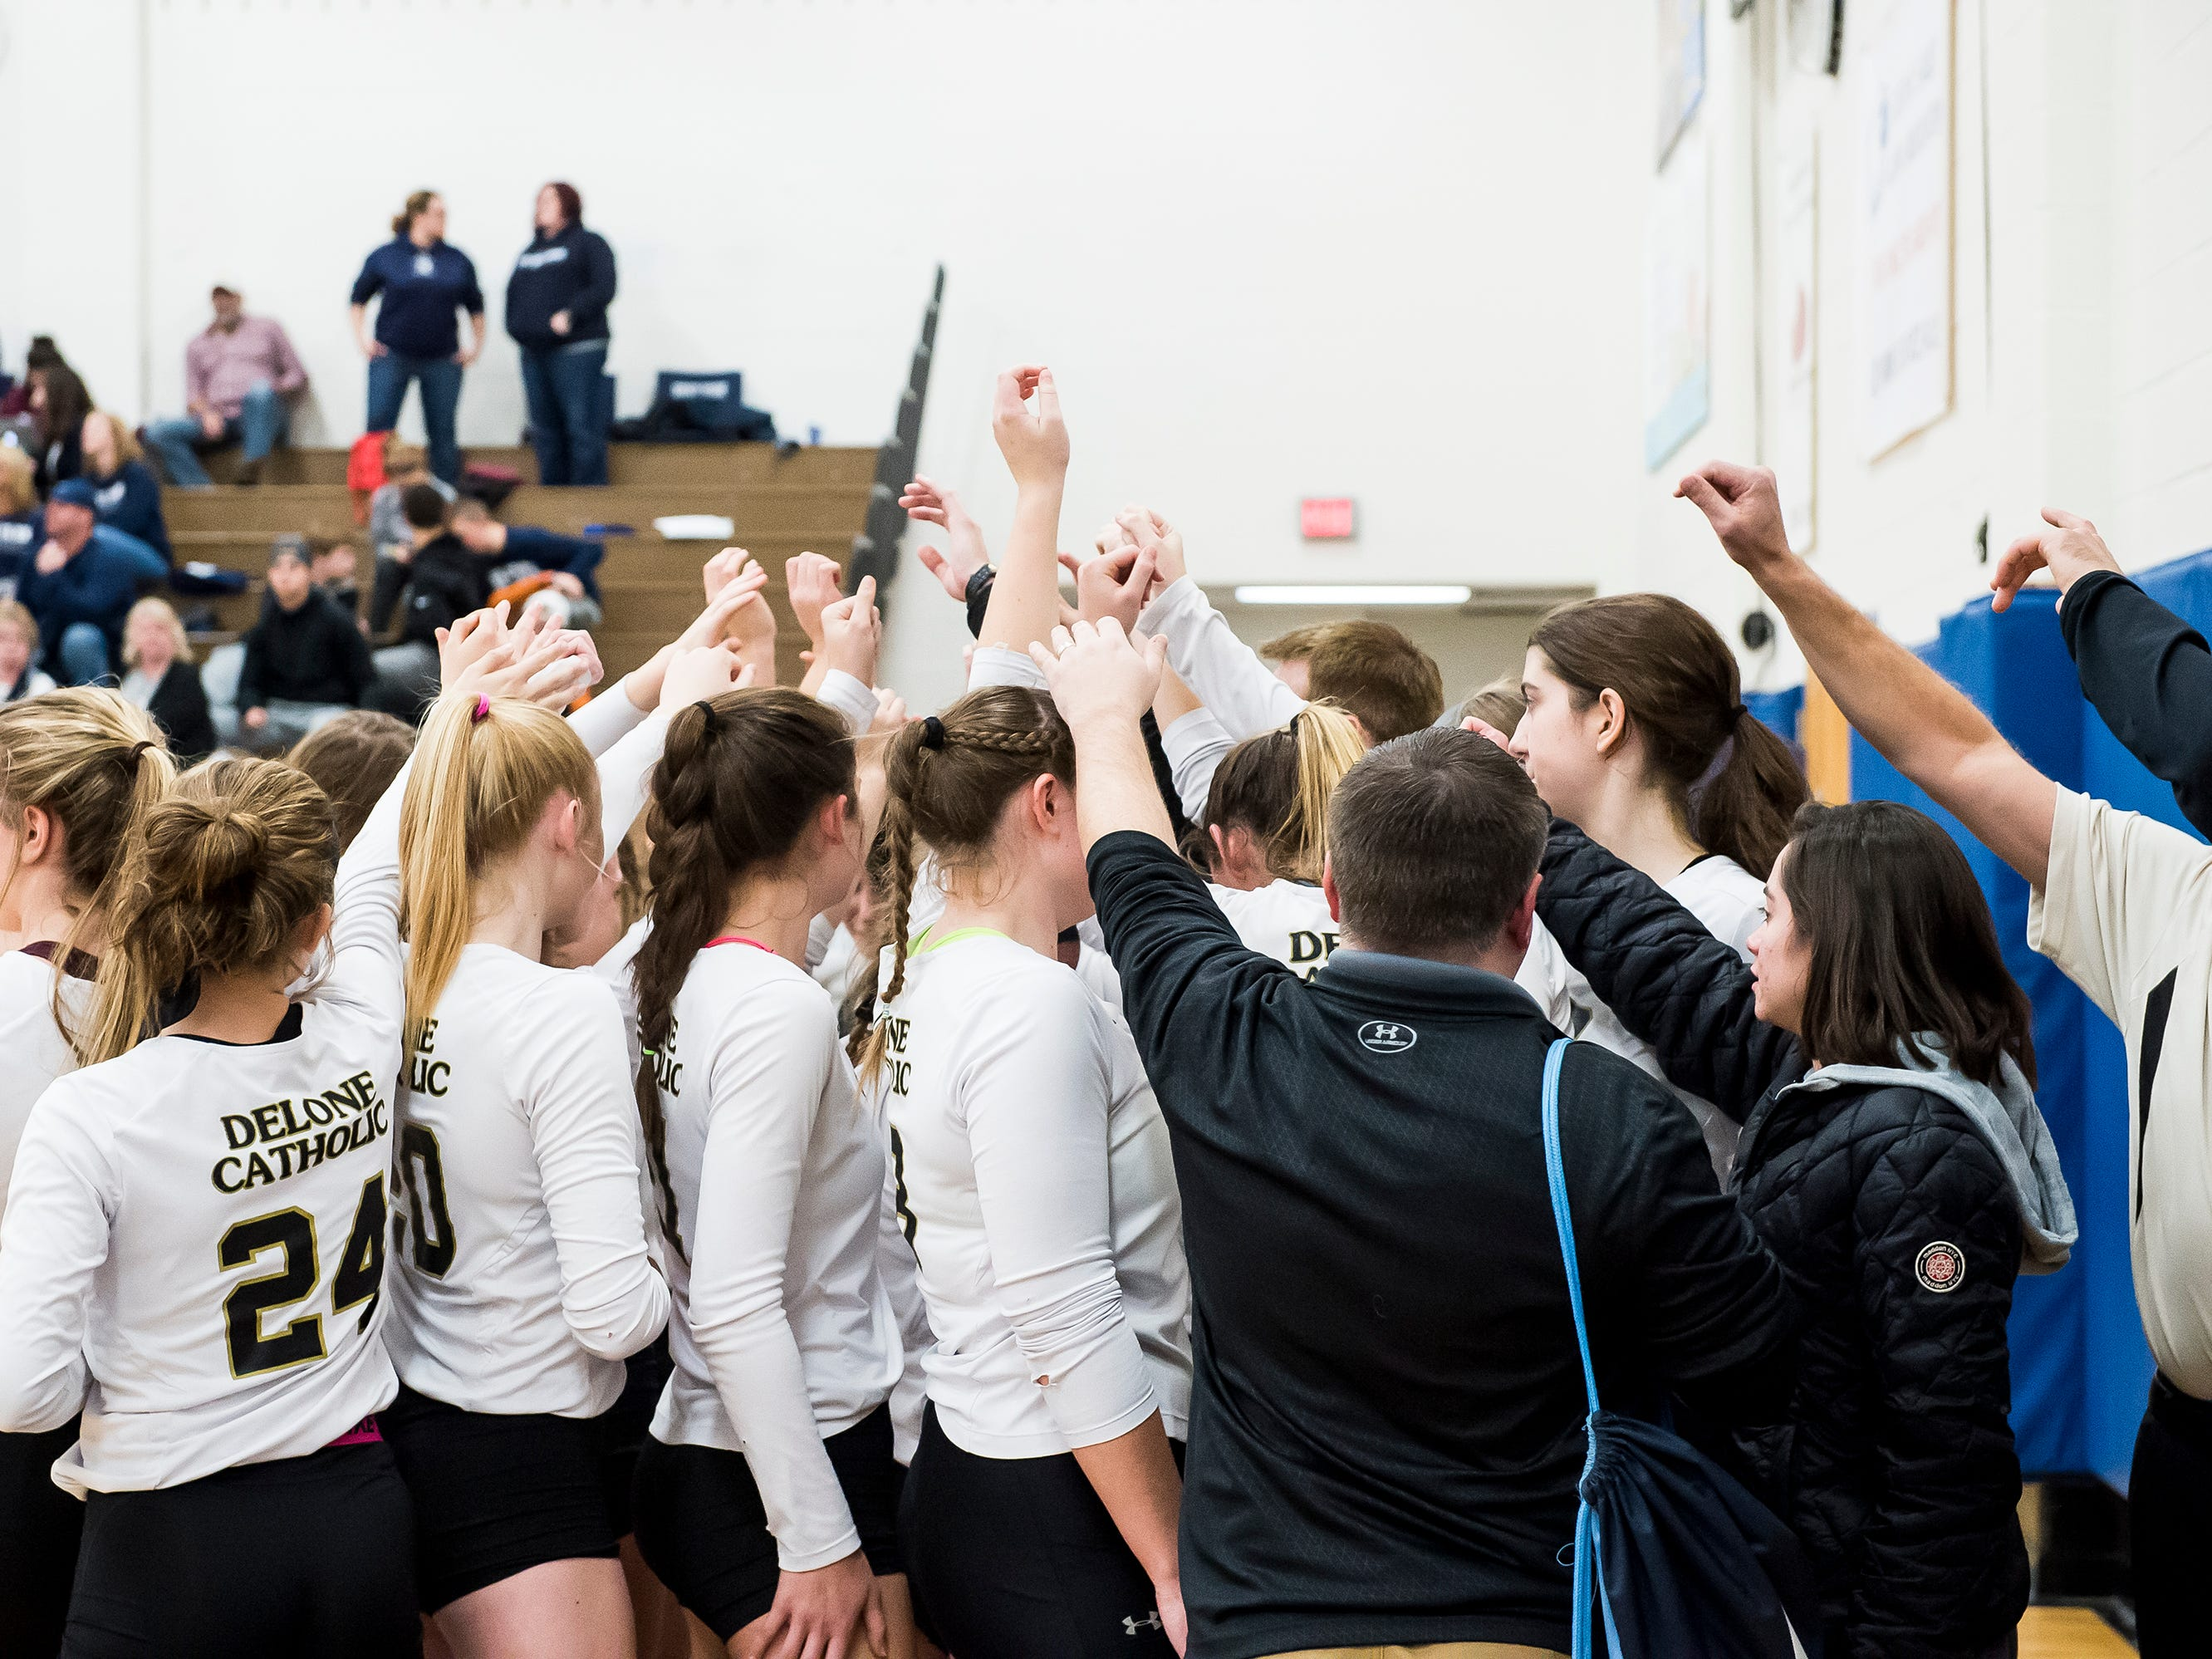 Delone Catholic break out of a huddle for the last time this season after falling in a PIAA 2A semifinal game at Exeter Township High School in Reading on Tuesday, November 13, 2018. The Squires fell to Holy Redeemer in five sets; 23-25, 25-13, 25-13, 18-25, 15-10.